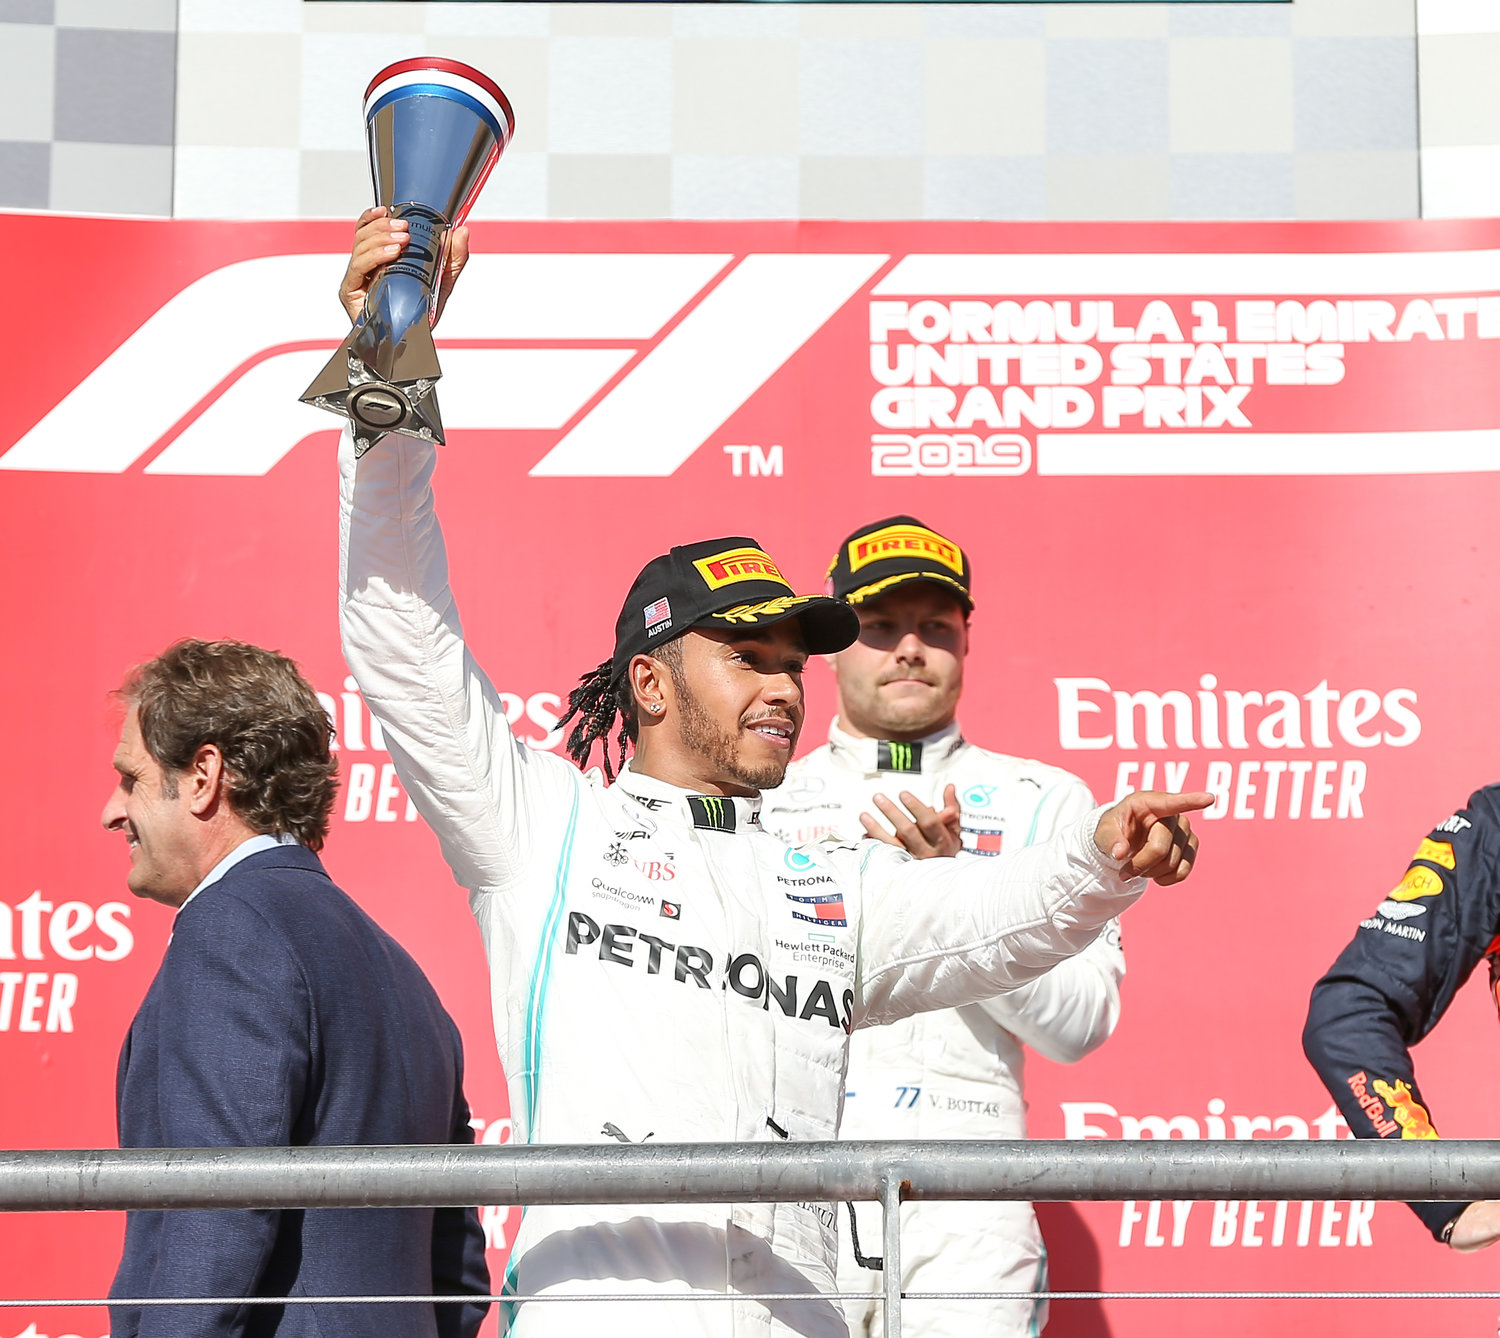 Mercedes AMG Petronas Motorsport driver Lewis Hamilton (44) of Great Britain gestures to the crowd after winning a sixth world title and finishing second at the Formula 1 United States Grand Prix at Circuit of the Americas in Austin, Texas, on Nov. 3, 2019.